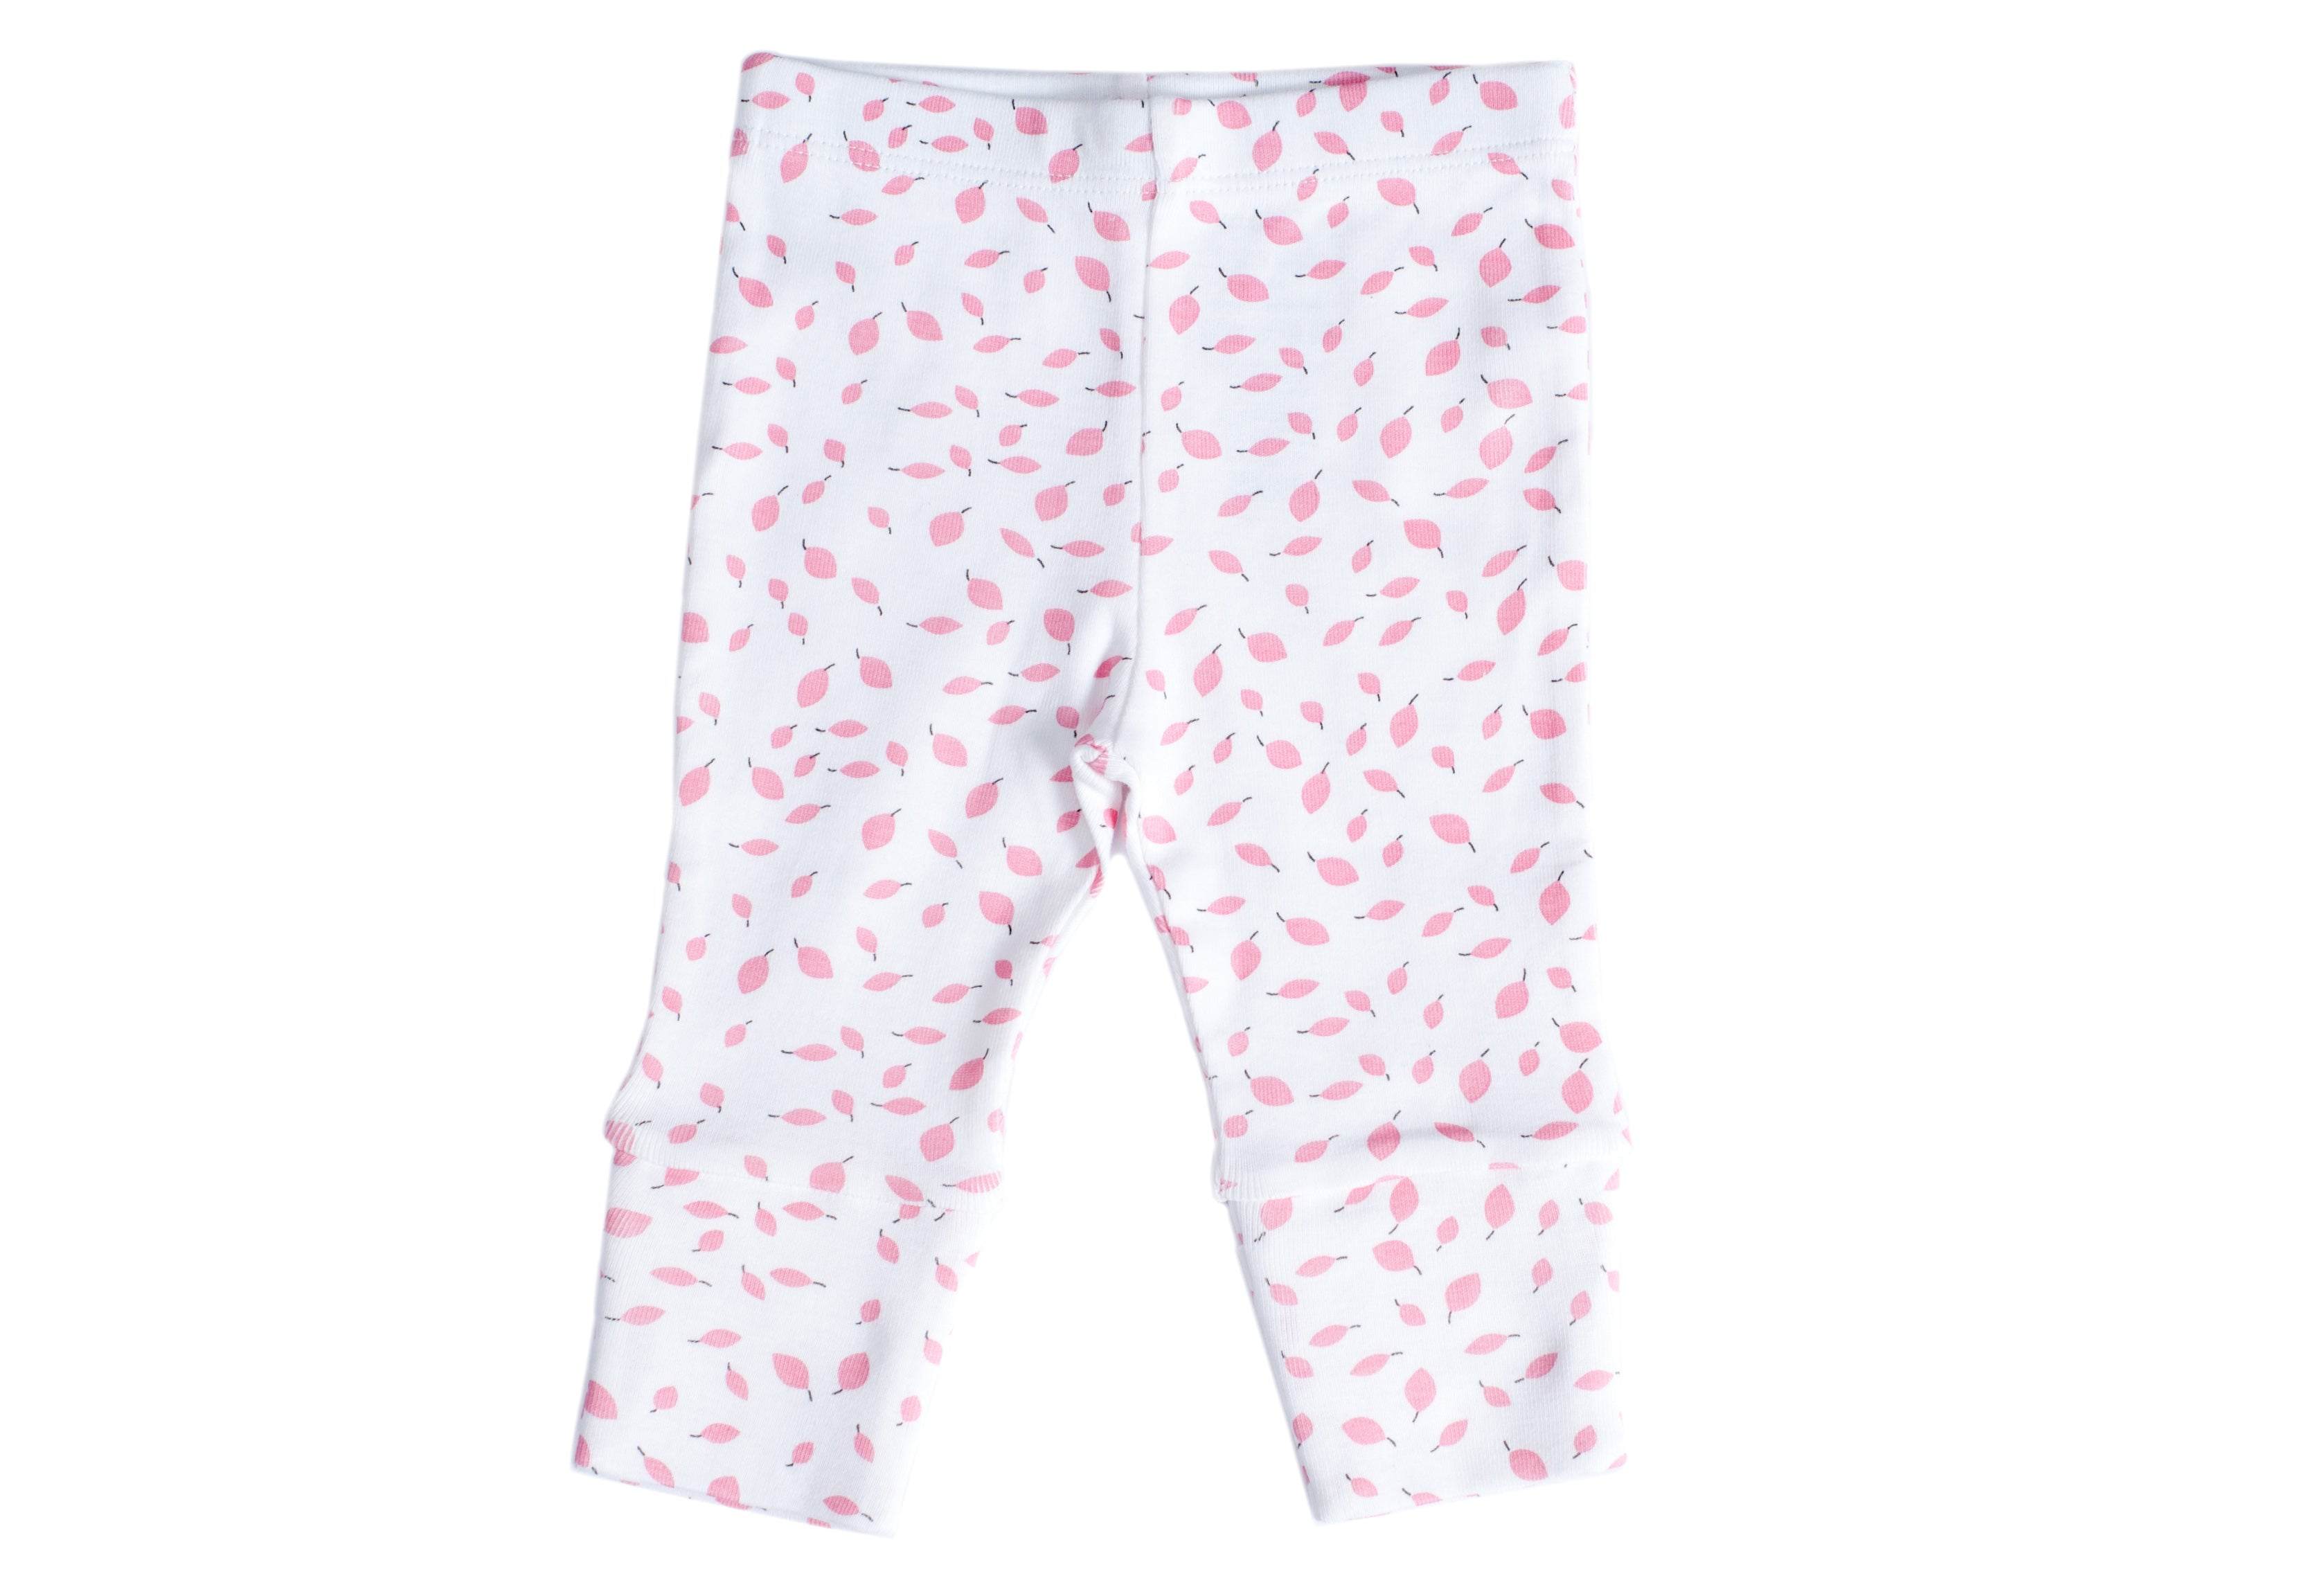 Organic Cotton Baby Leggings - AUTUMN LEAVES PINK